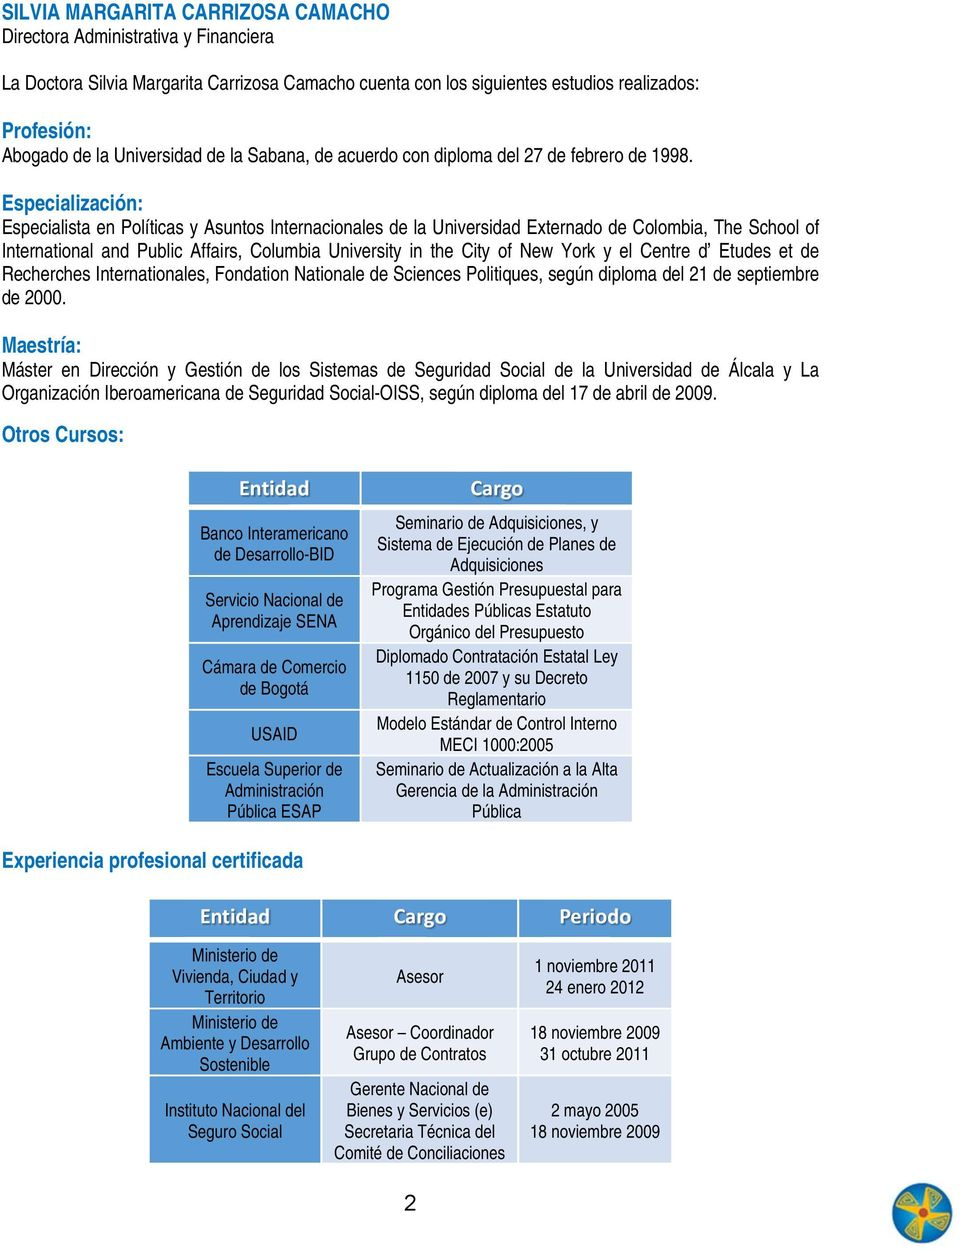 Especialización: Especialista en Políticas y Asuntos Internacionales de la Universidad Externado de Colombia, The School of International and Public Affairs, Columbia University in the City of New